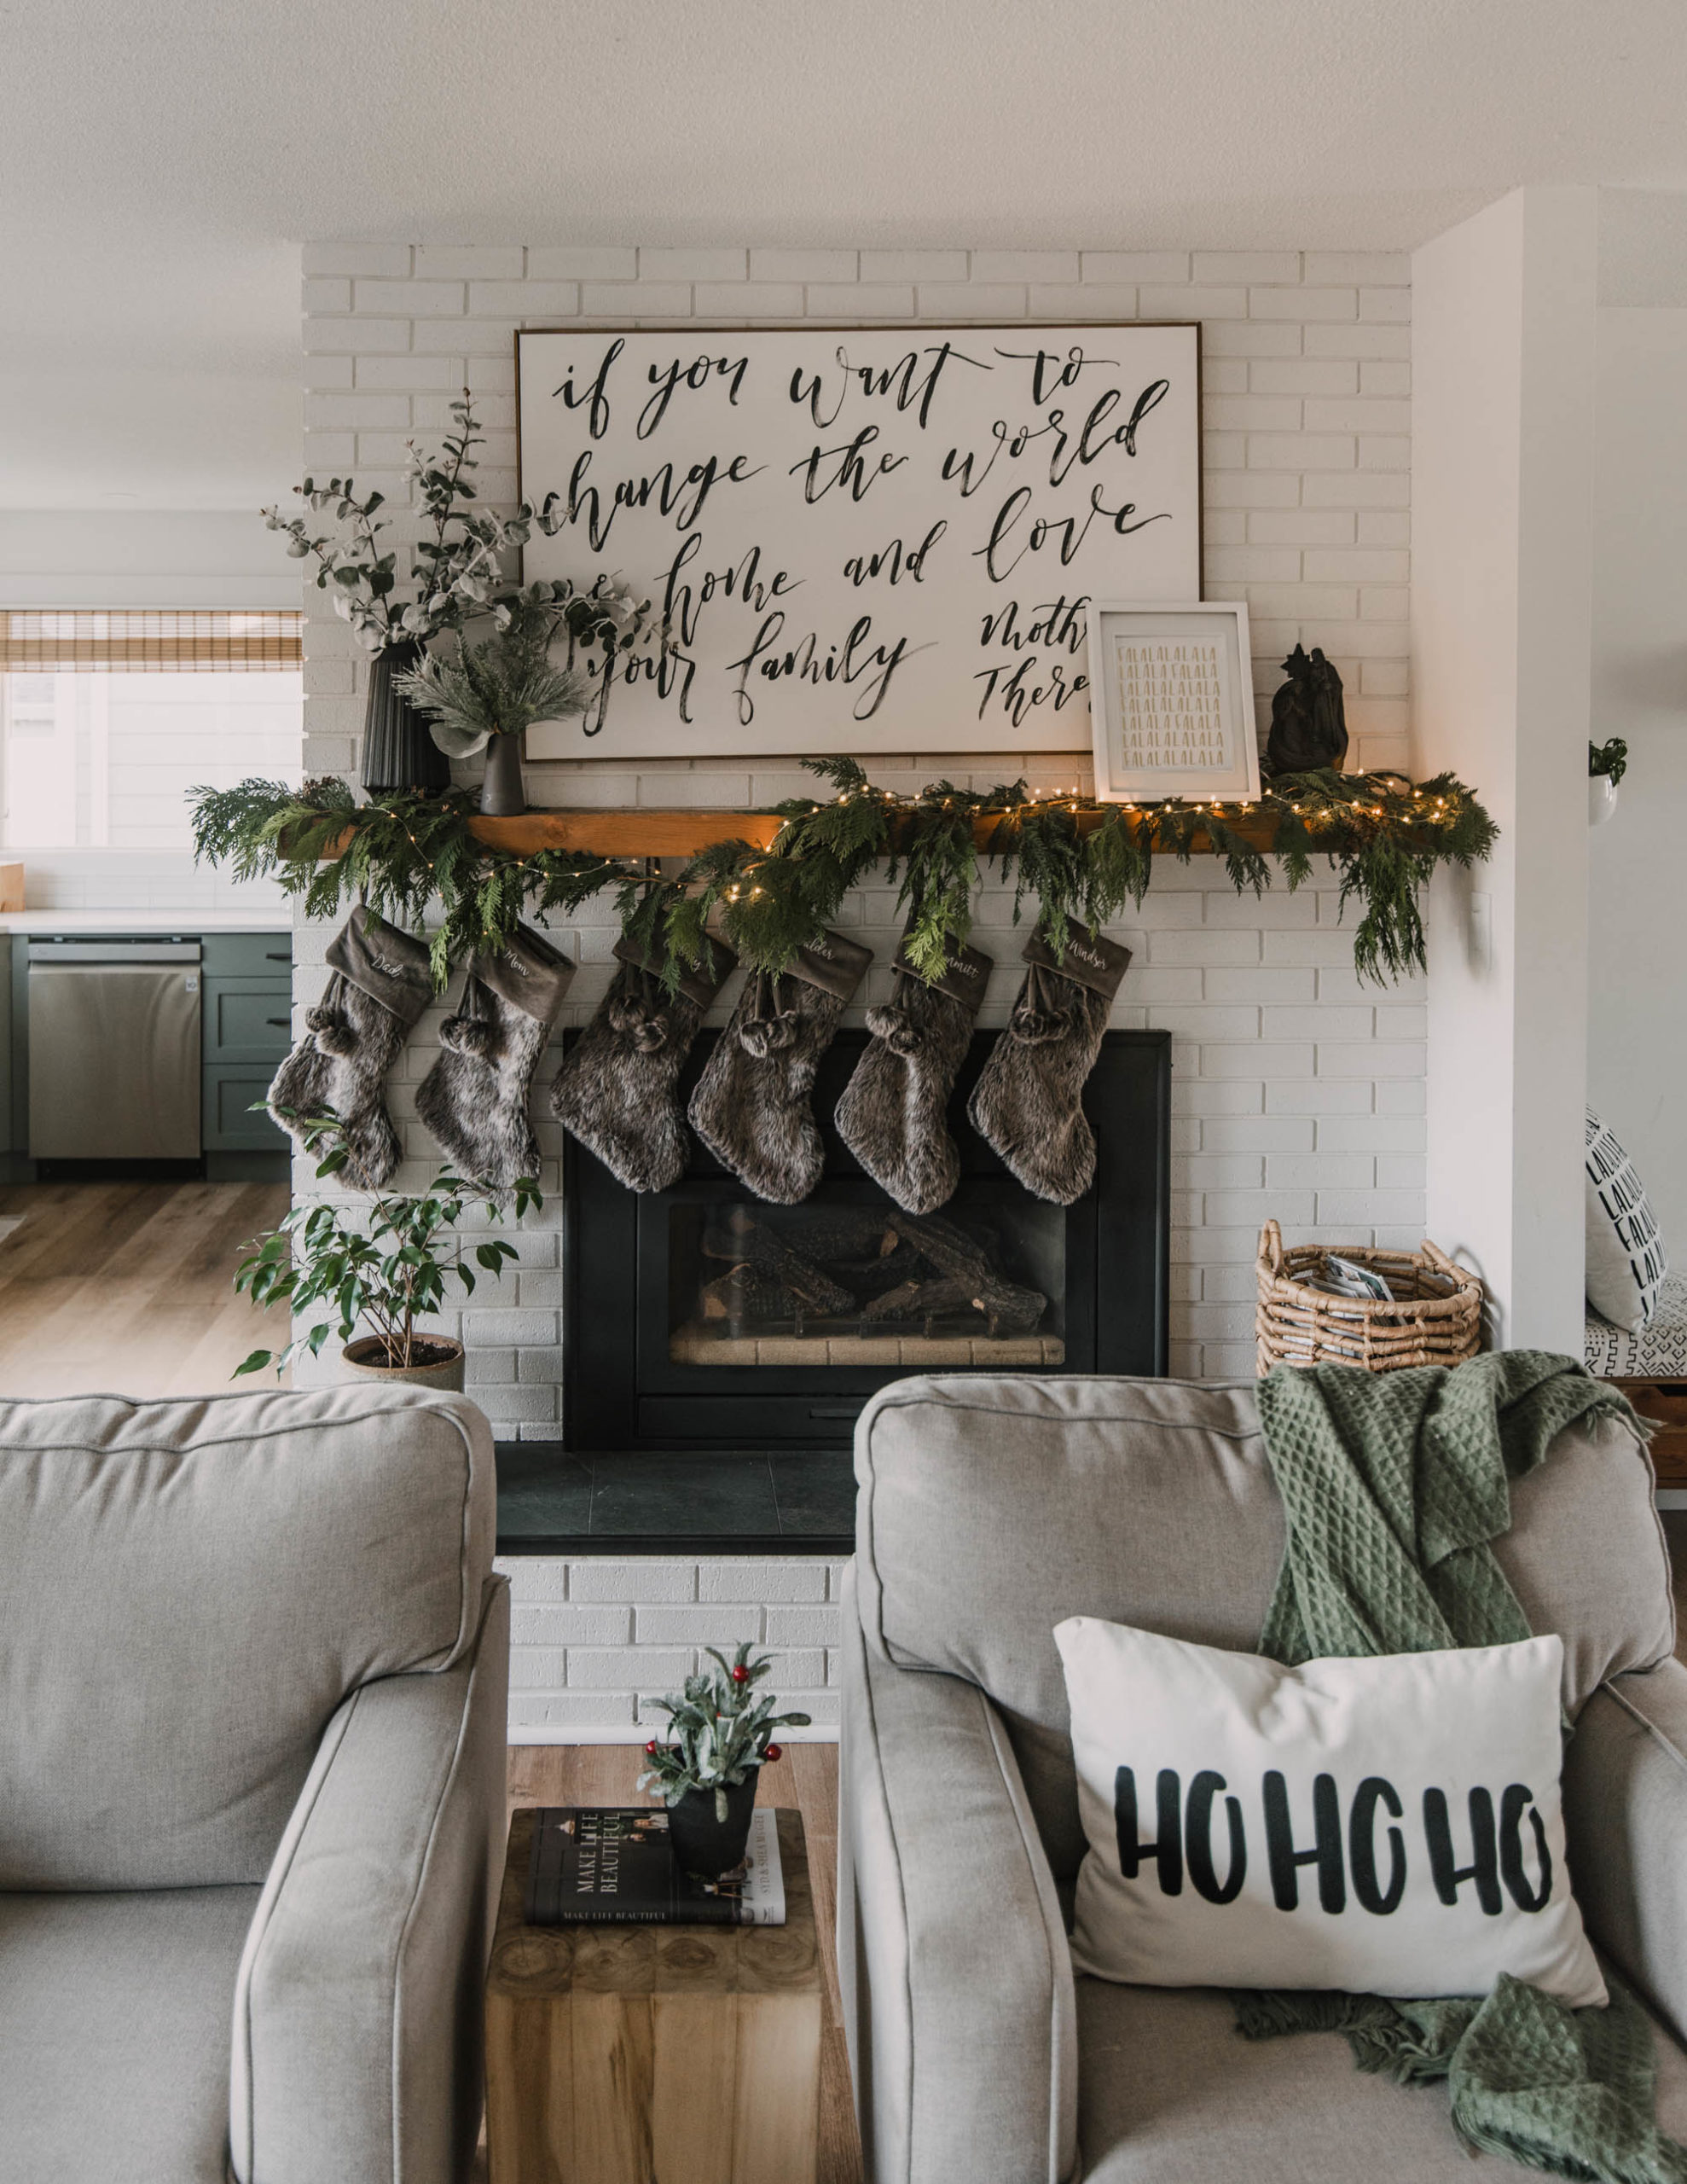 Holiday Home Tour full of fresh greenery and hand lettered details